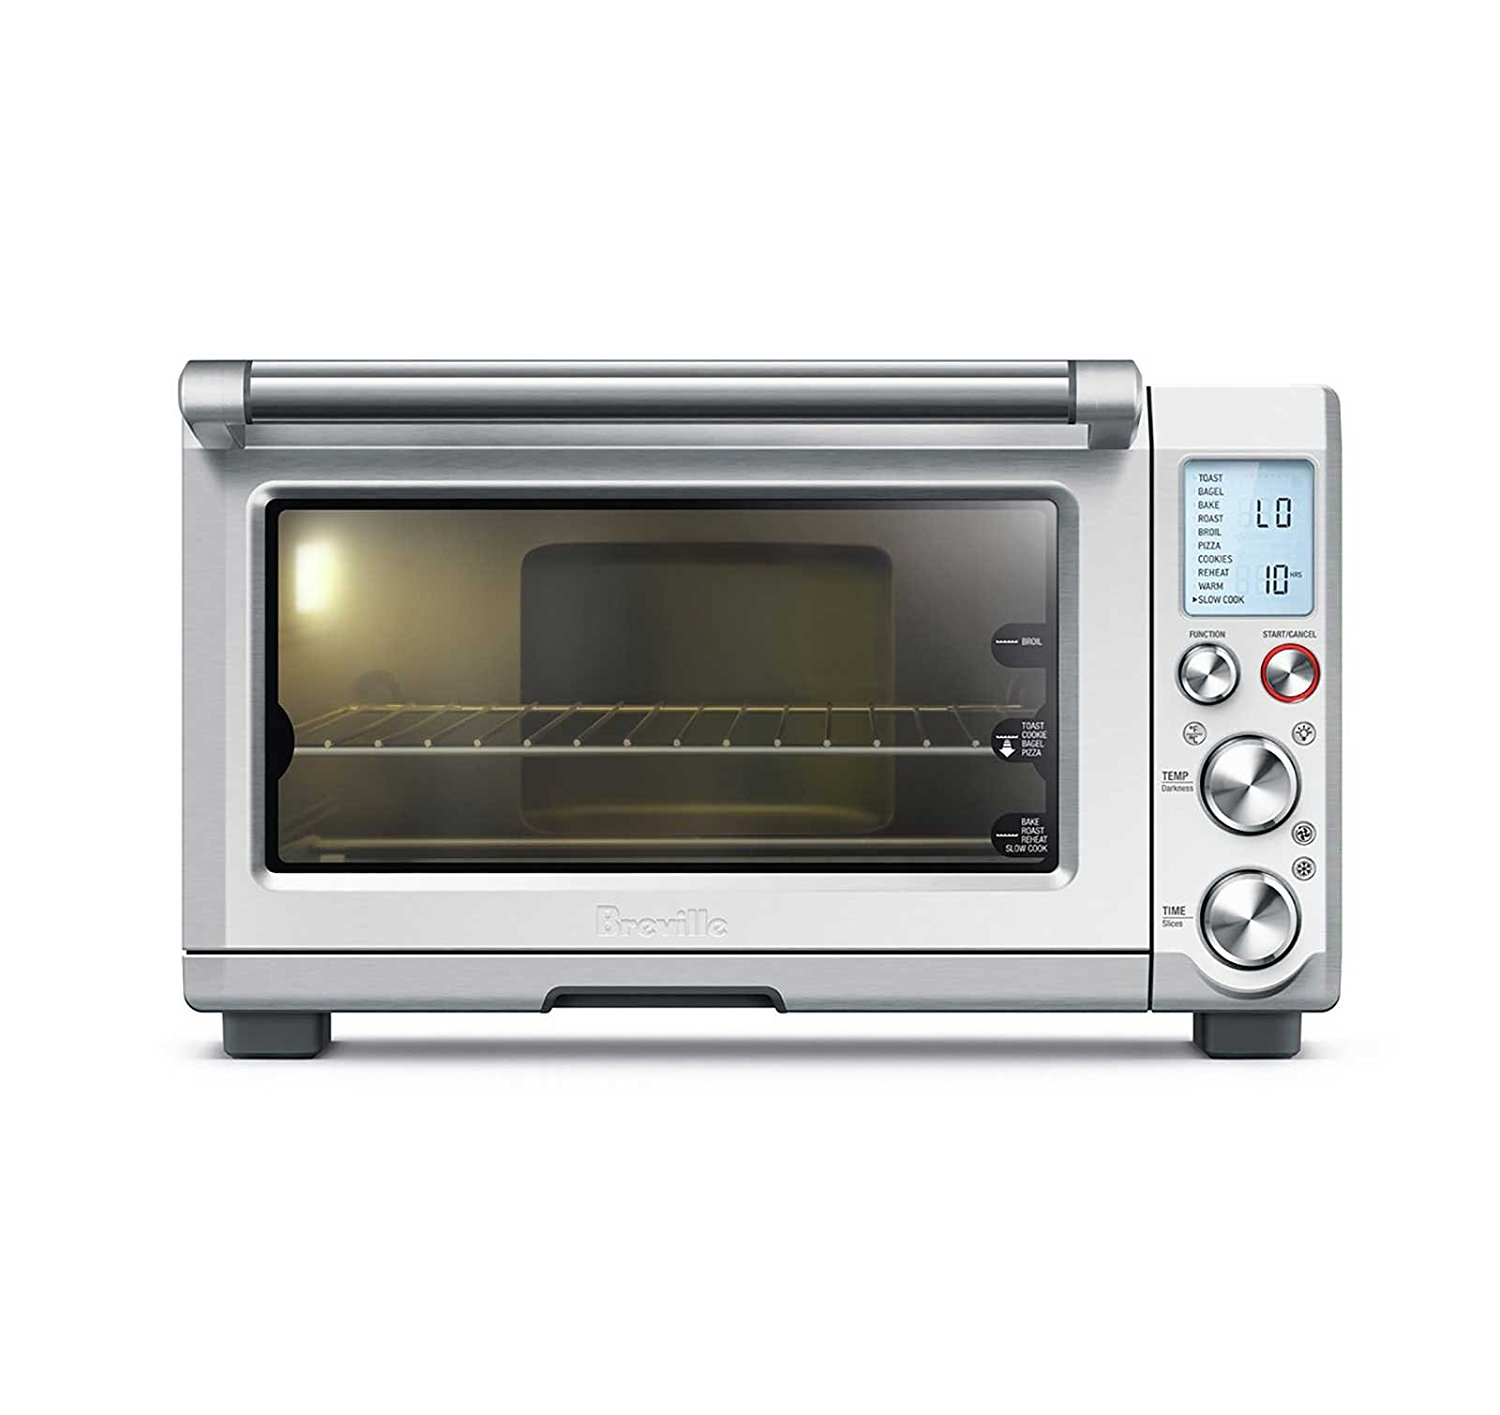 Convection Oven Review Center